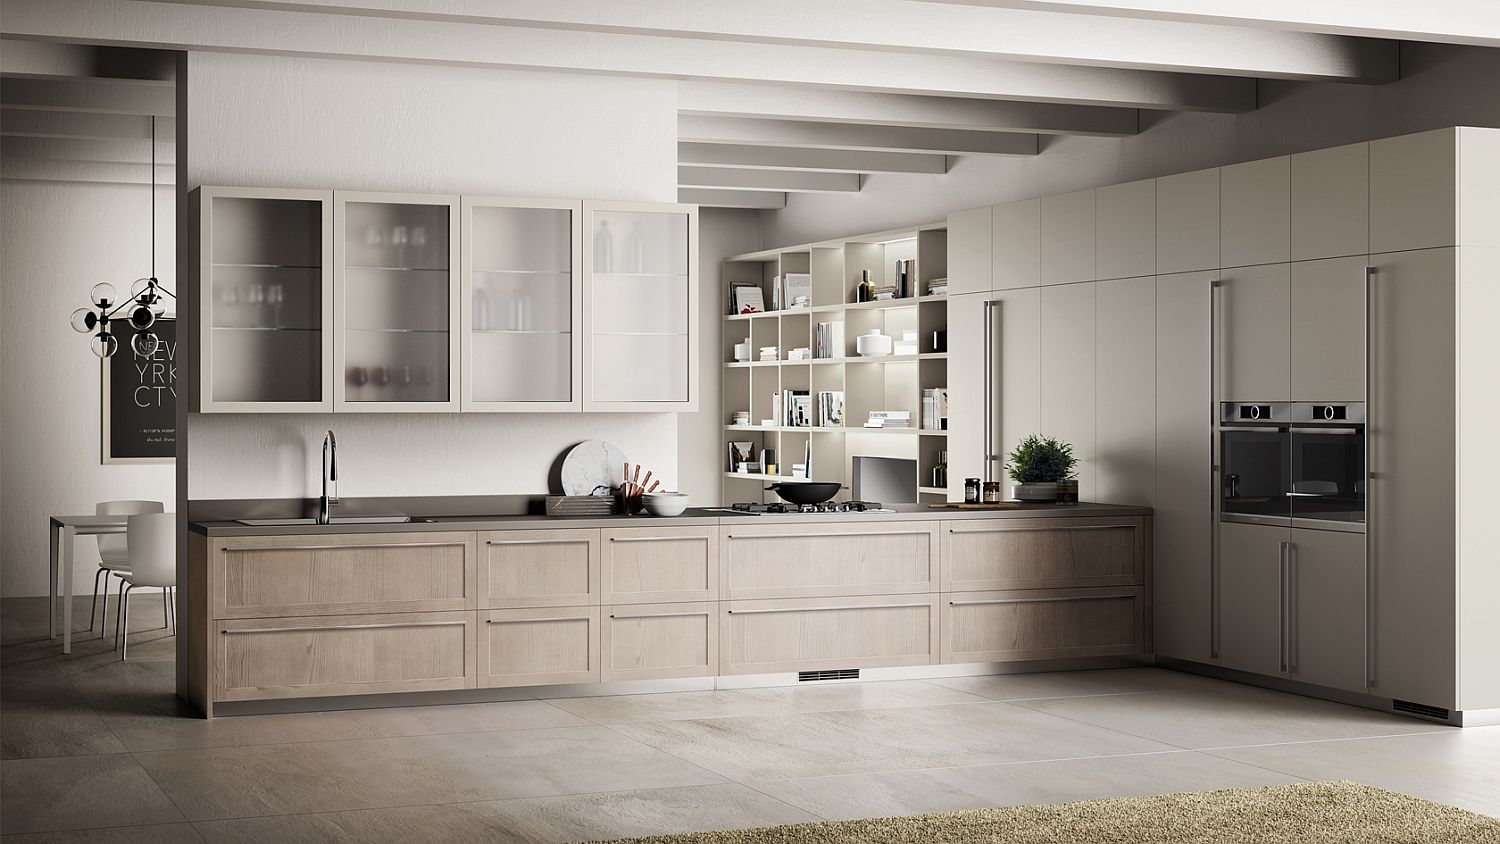 Lovely wall-mounted units with cool wooden cabinets in the kitchen